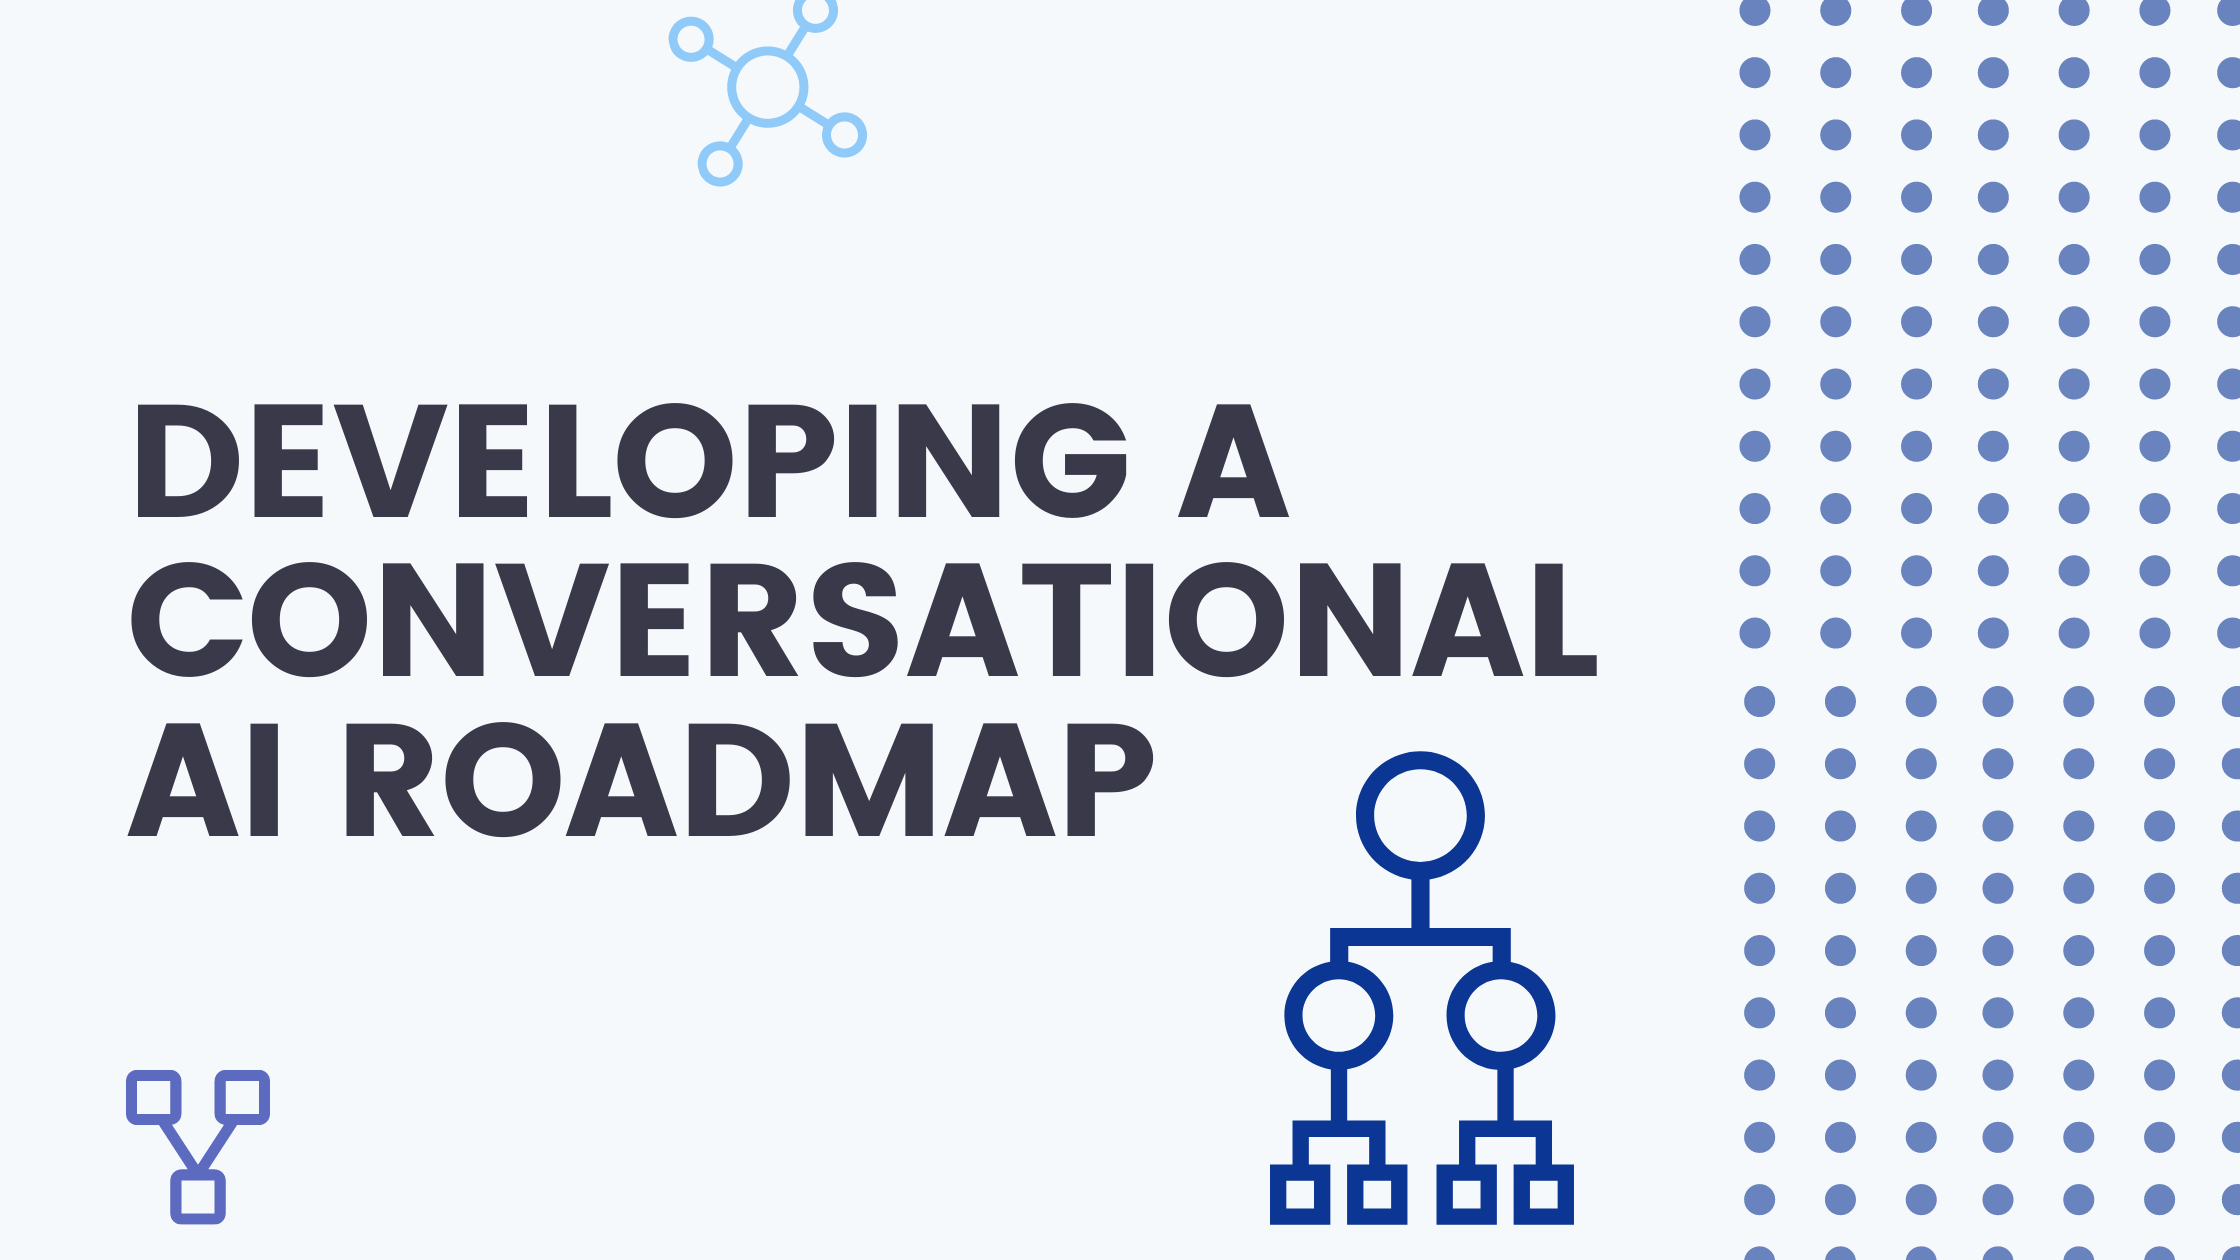 developing conversational ai roadmap title